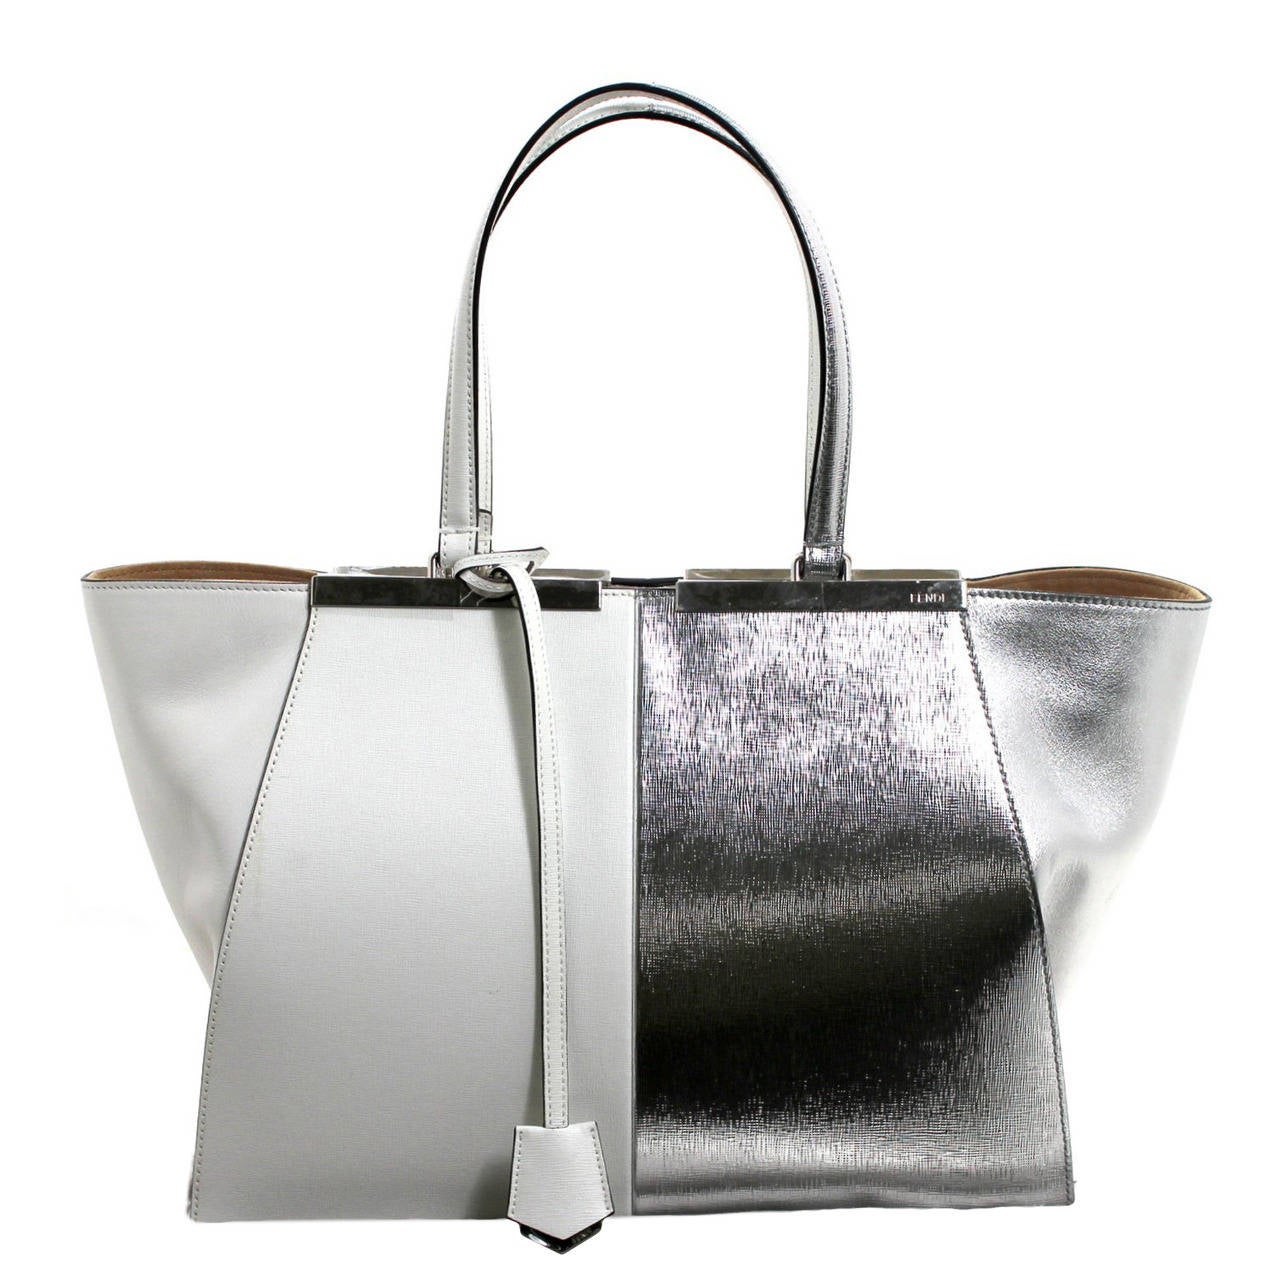 Fendi White and Silver Leather BiColor Trois Jours Tote Bag 1